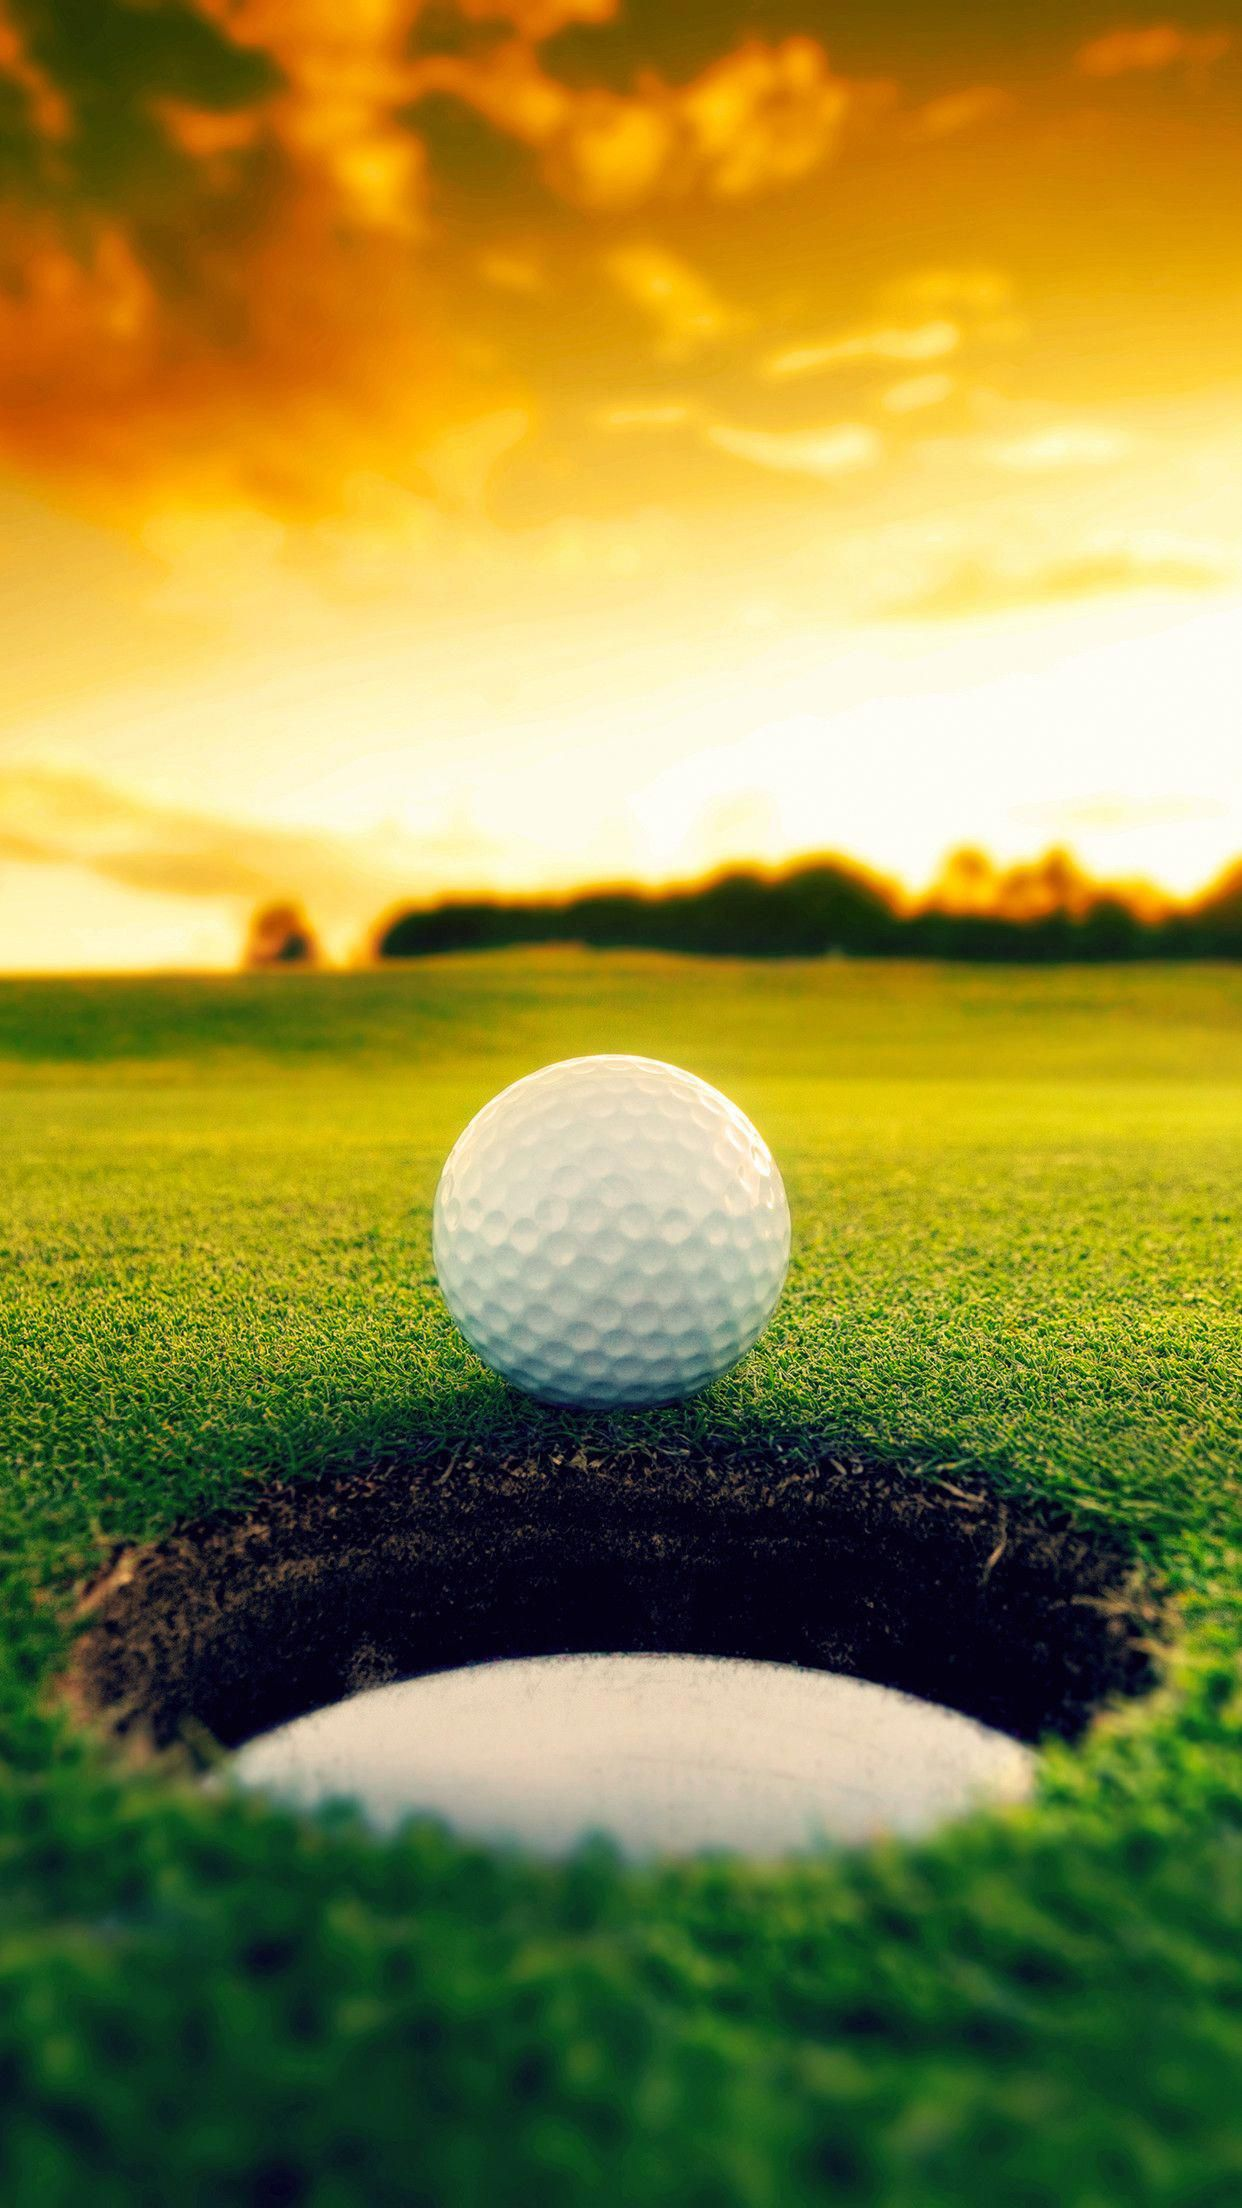 Iphone Golf Wallpaper 60 Images Golf Pictures Golf Quotes Golf Ball